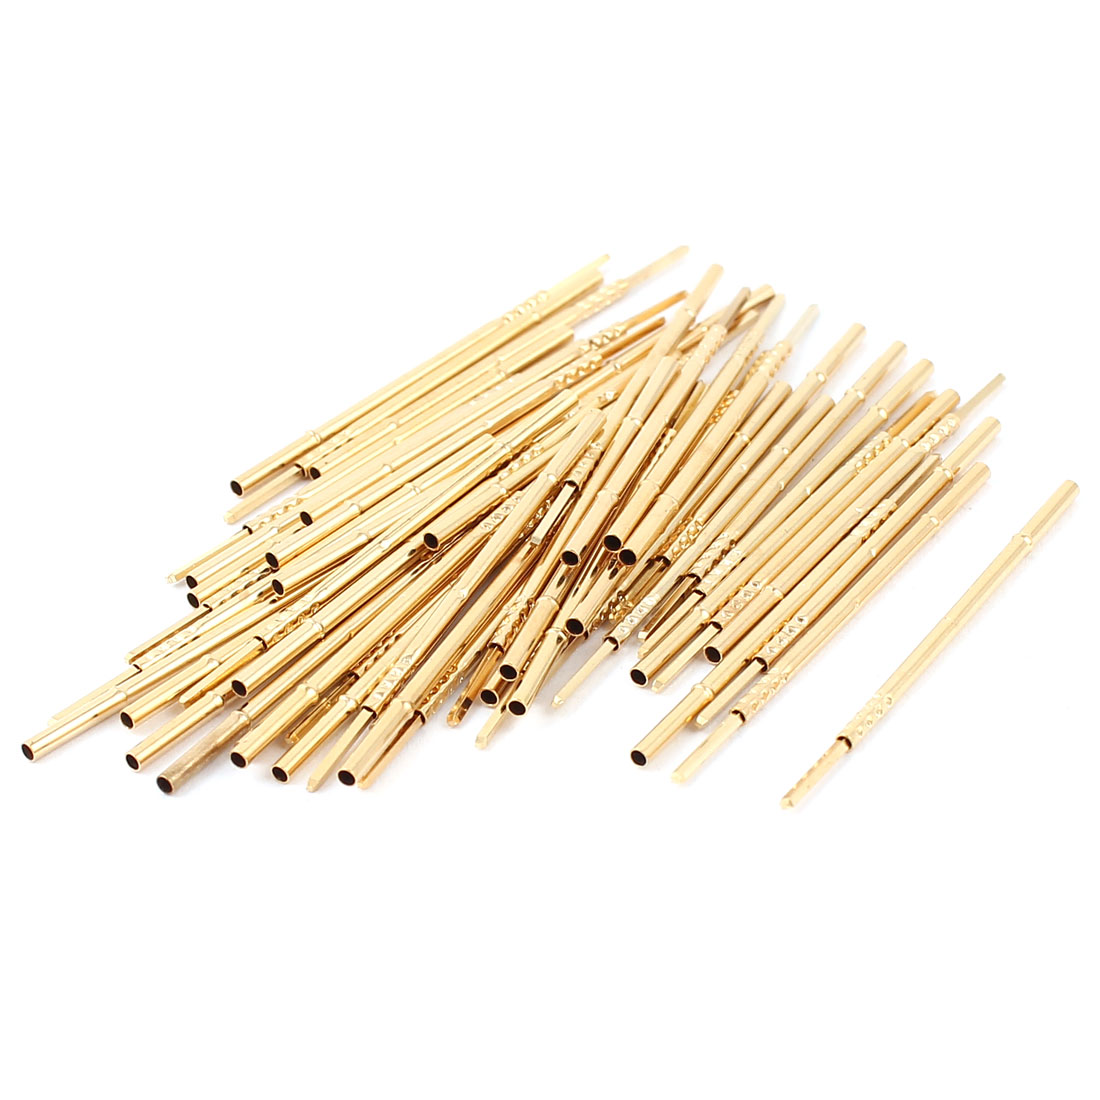 50 Pcs PL75-4W 1.3mm Dia Testing Probe Pin Receptacles Gold Tone